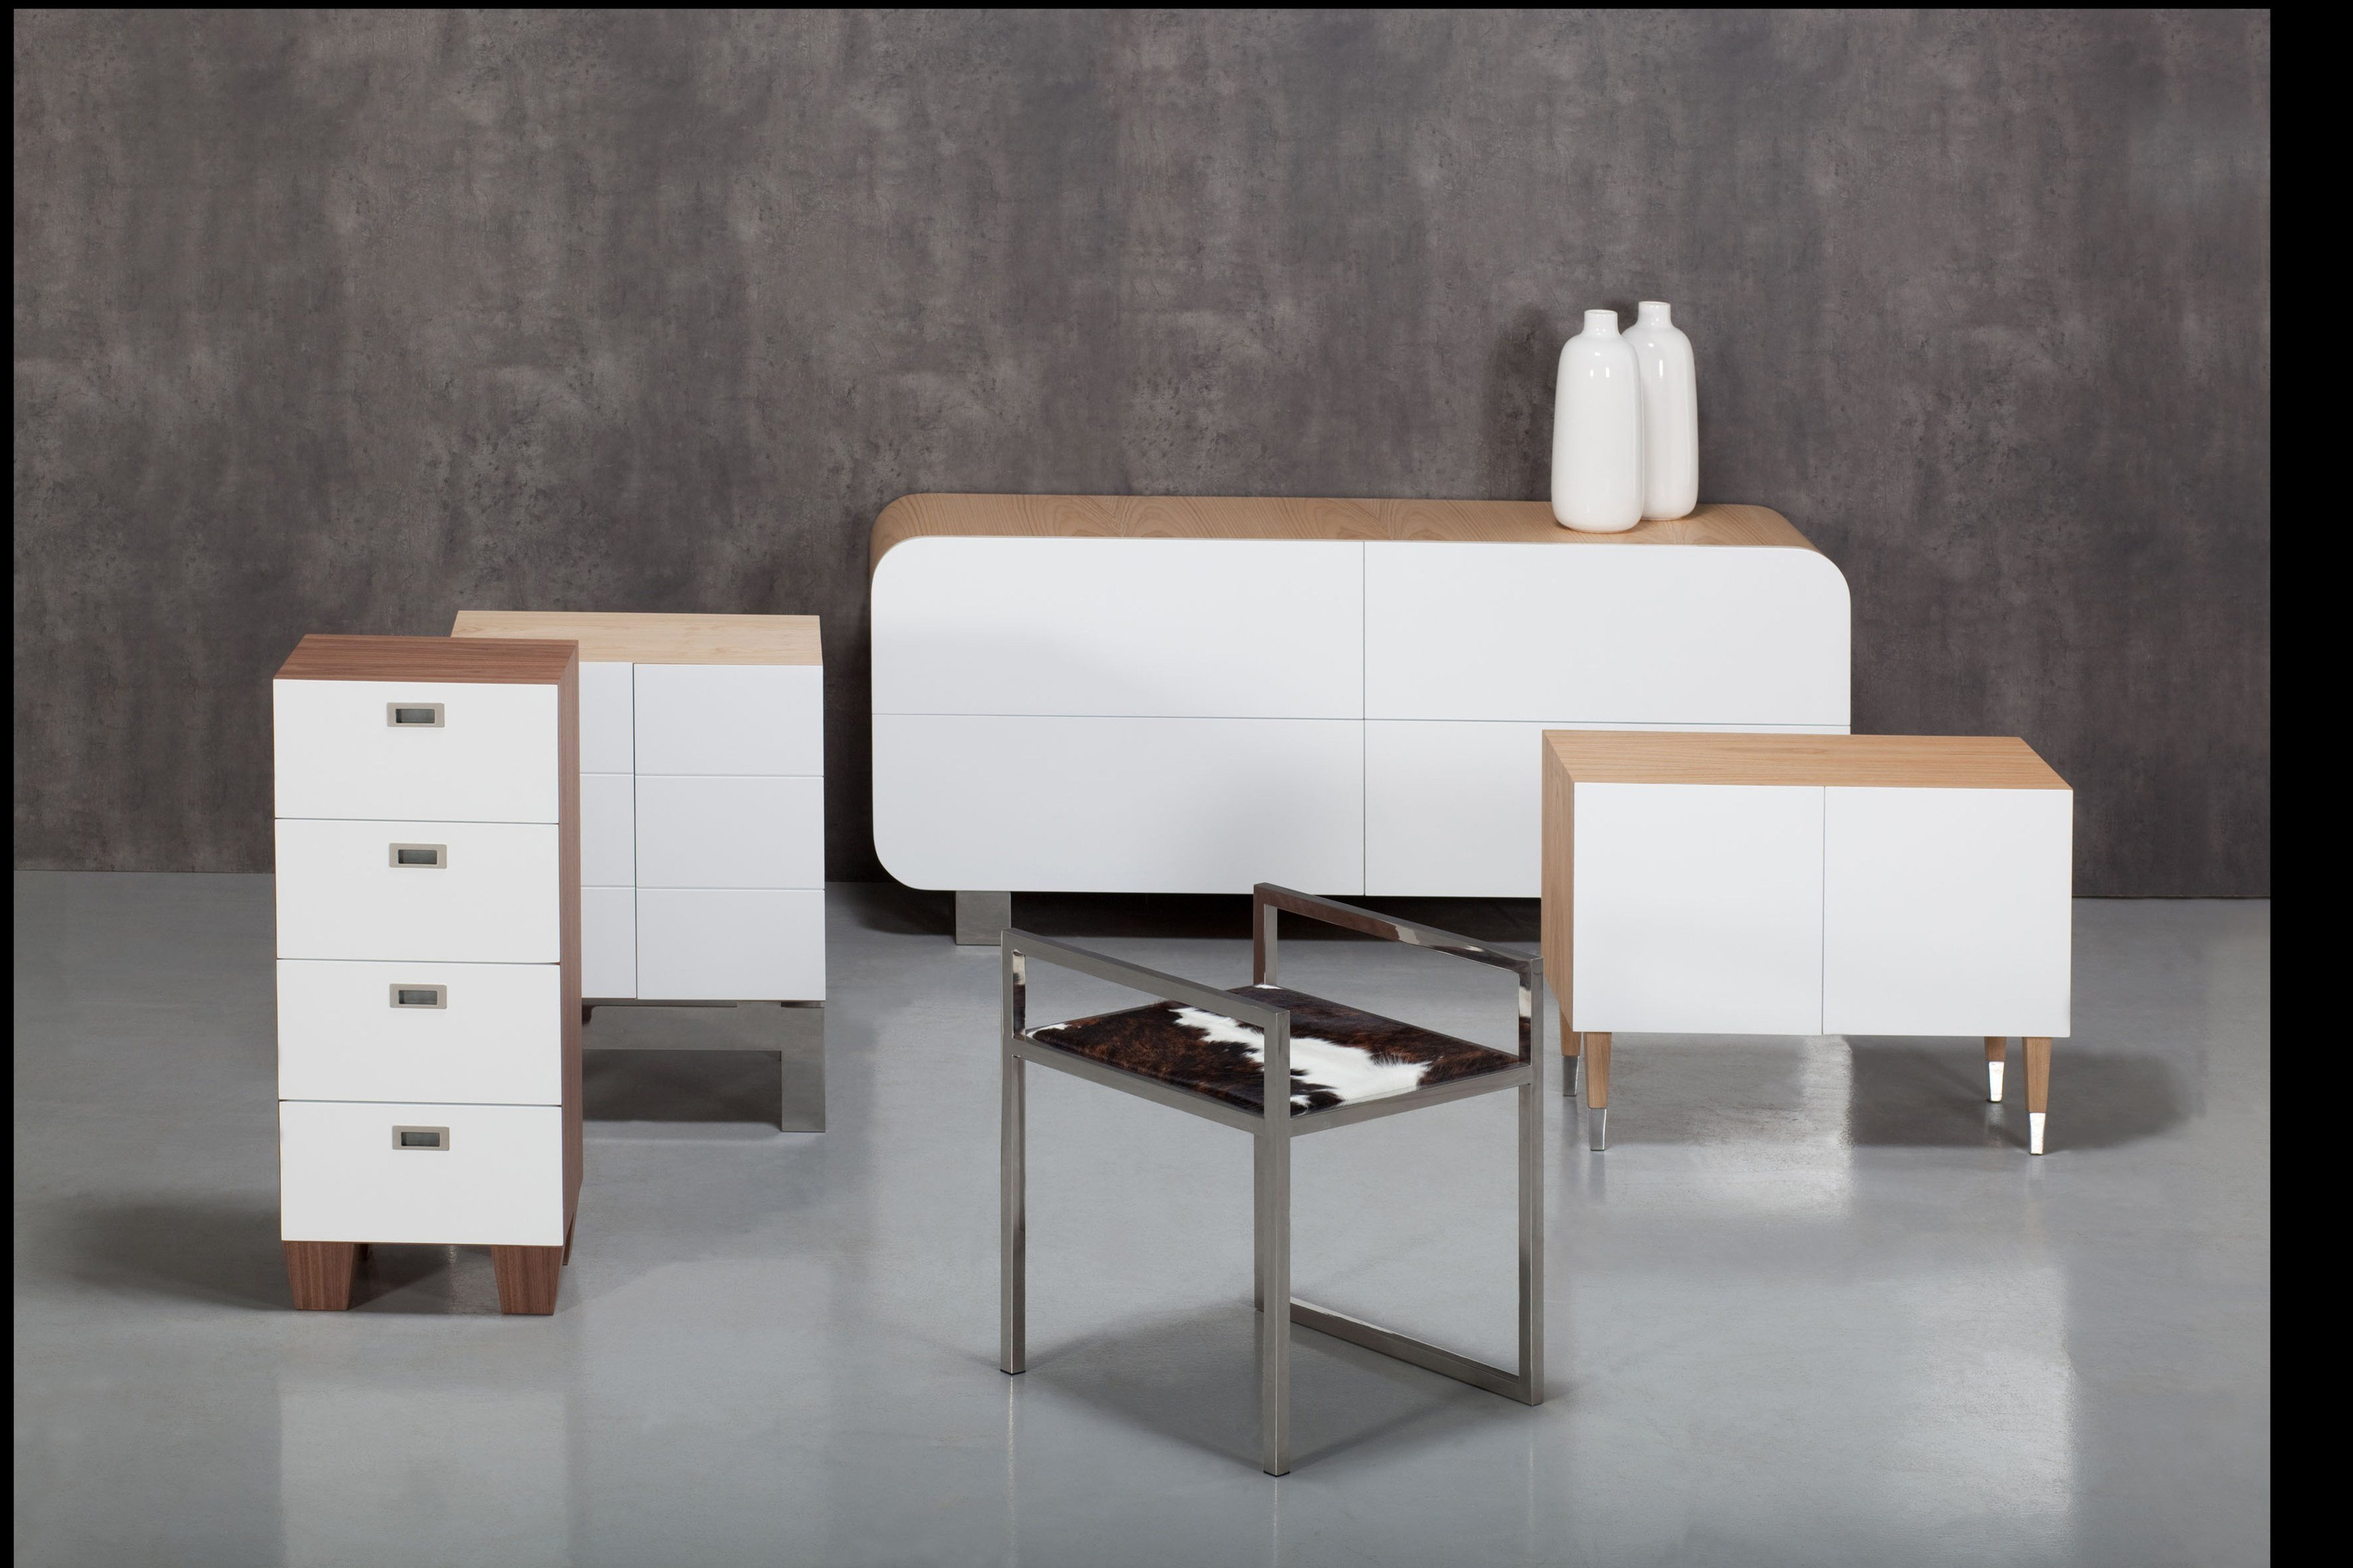 marly petit buffet by azea design victor caetano. Black Bedroom Furniture Sets. Home Design Ideas